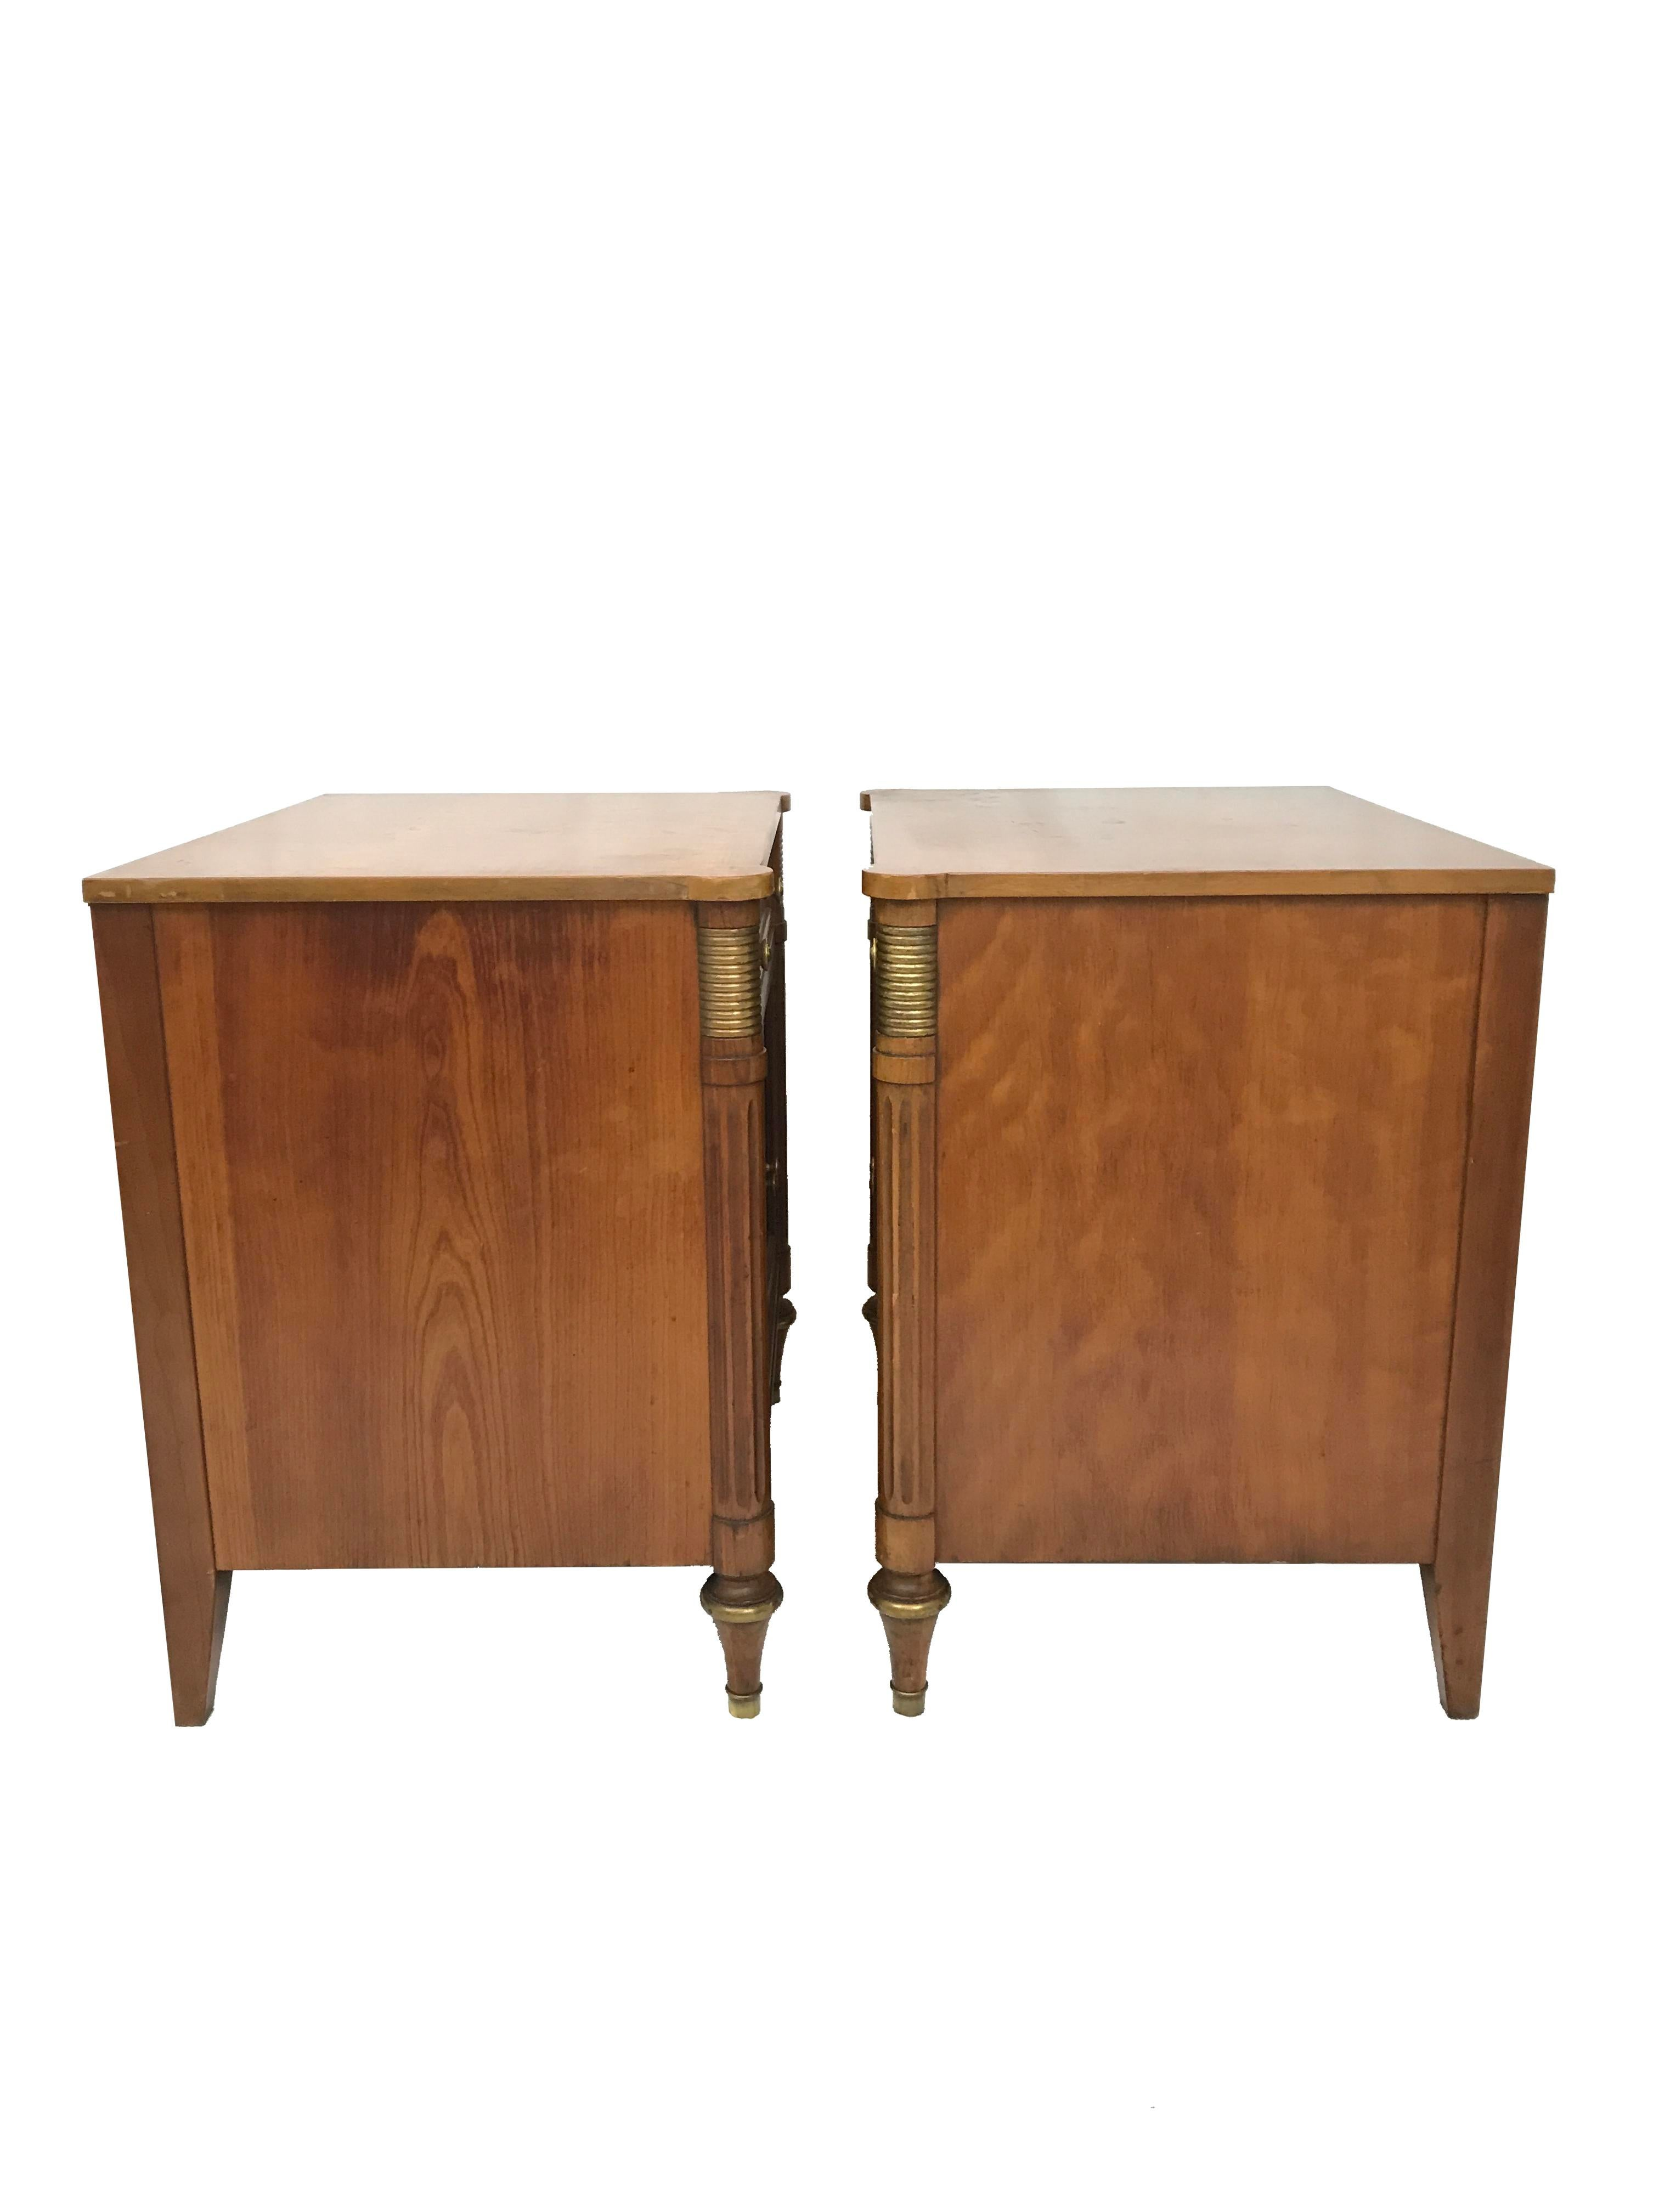 Kindel Furniture Co. Belvedere Collection Nighstands   A Pair For Sale    Image 5 Of